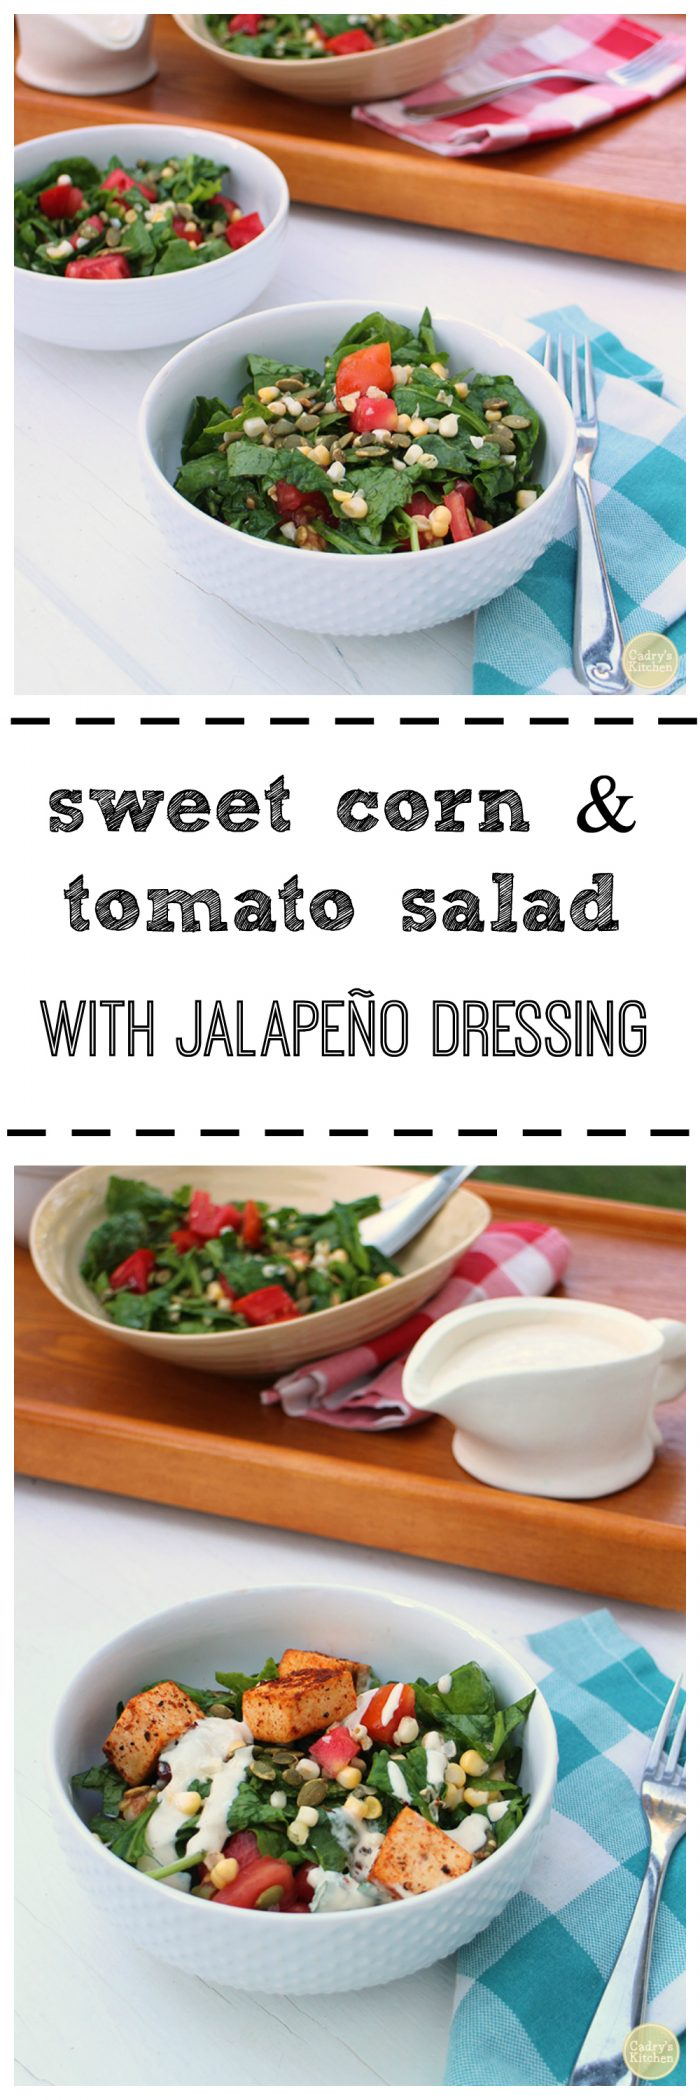 Sweet corn & tomato salad with jalapeño dressing - The quintessential summer salad. Vegan | cadryskitchen.com